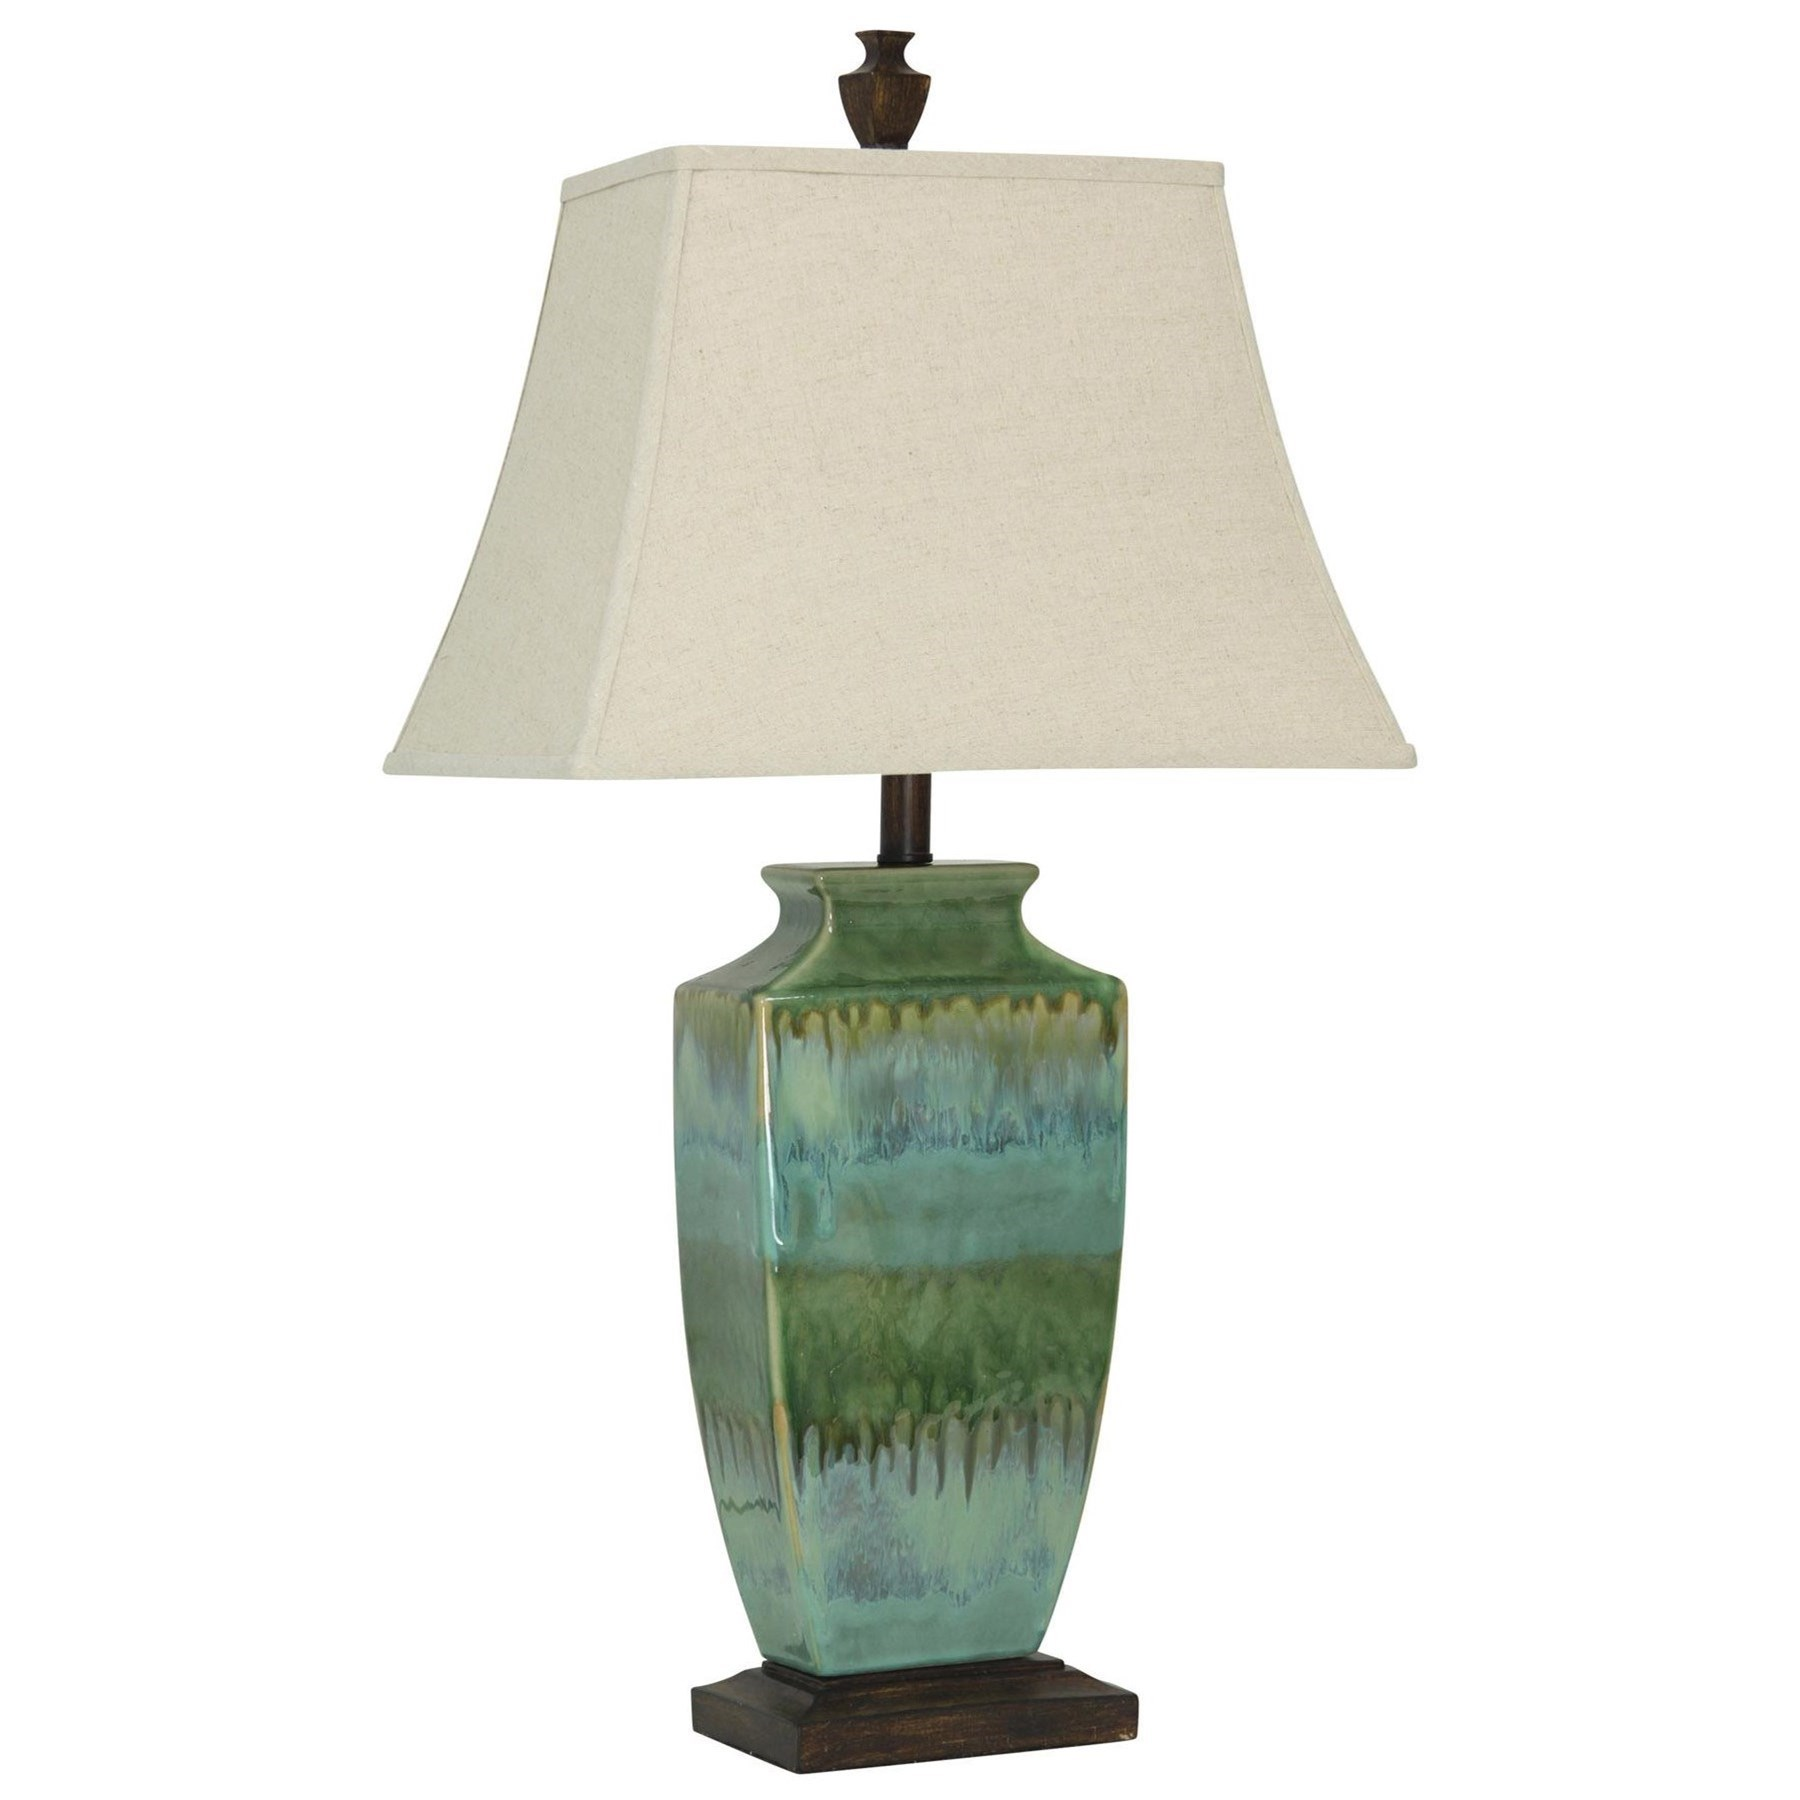 Lamps Lamp with Green Blue Glaze at Ruby Gordon Home